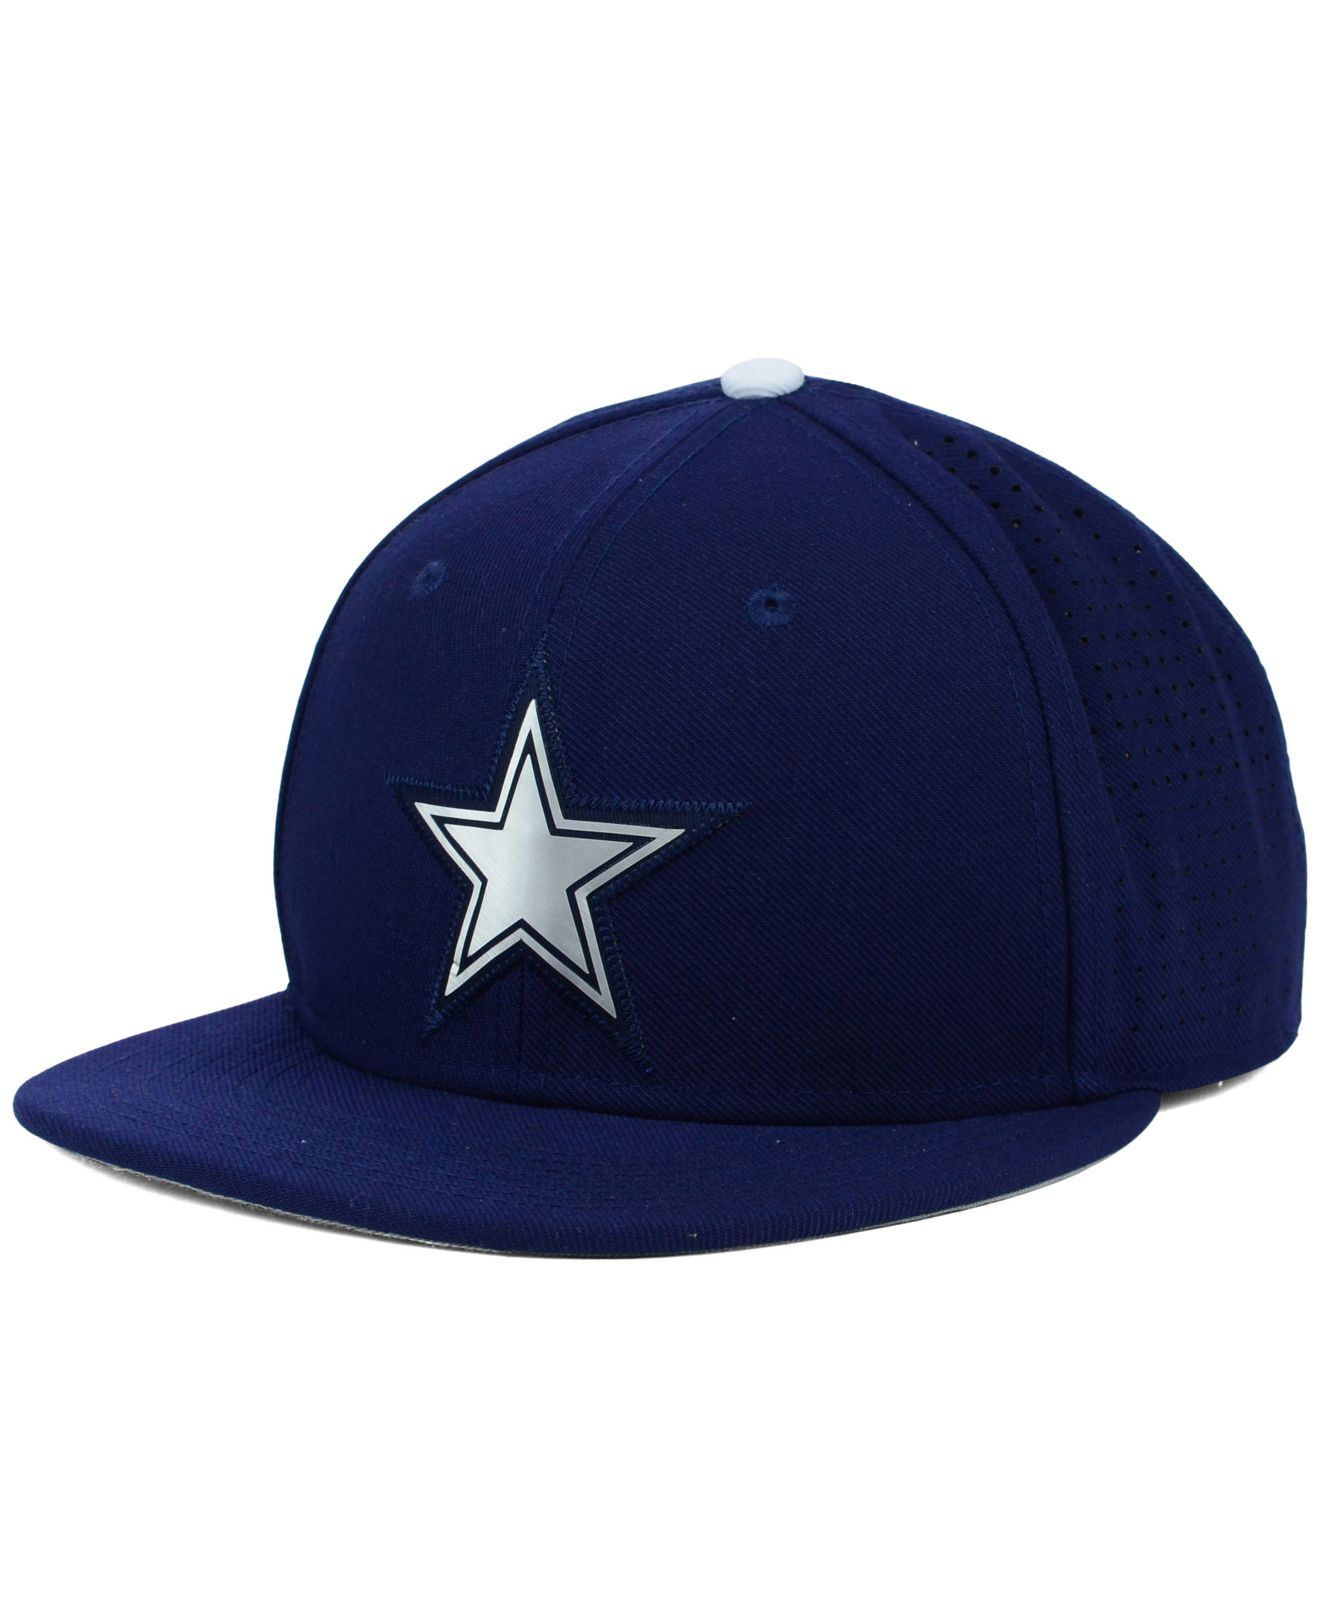 brand new 0fc02 a7d05 ... switzerland lyst nike dallas cowboys true vapor fitted cap in blue for  men dfbee 113b2